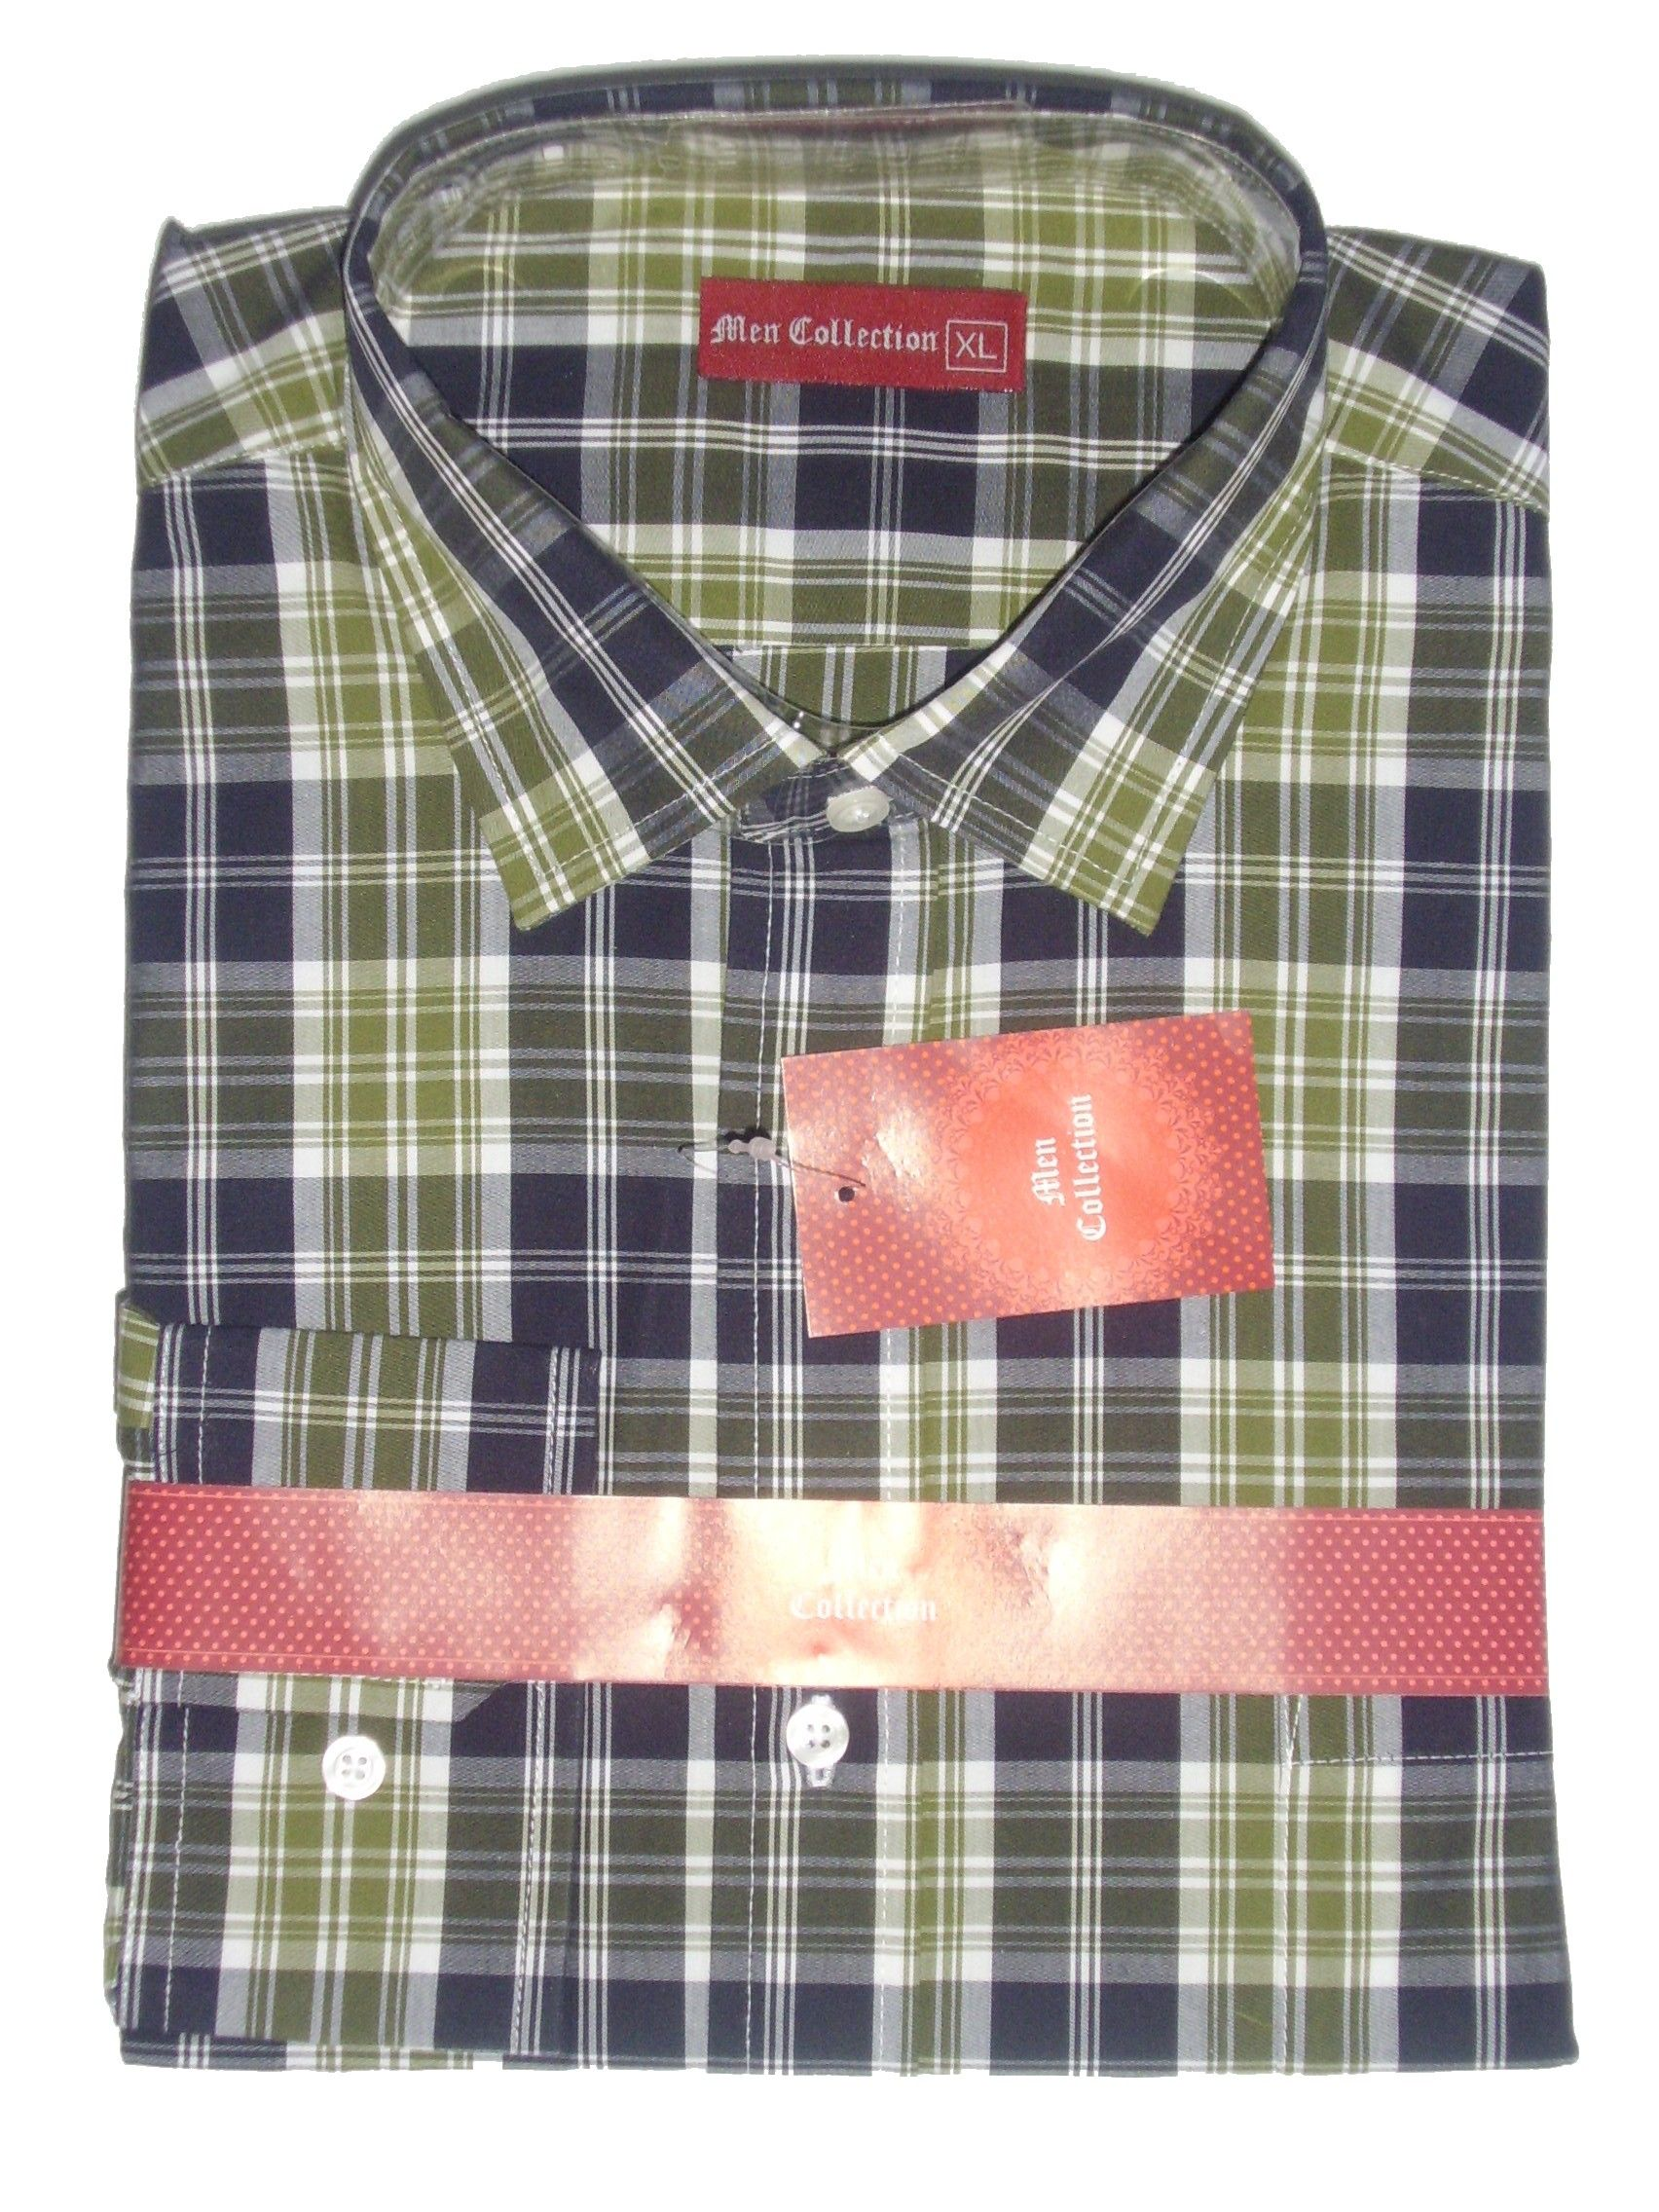 Green Multi Check Cotton Shirt 20% off on your order, use code KW202015 at the checkout.